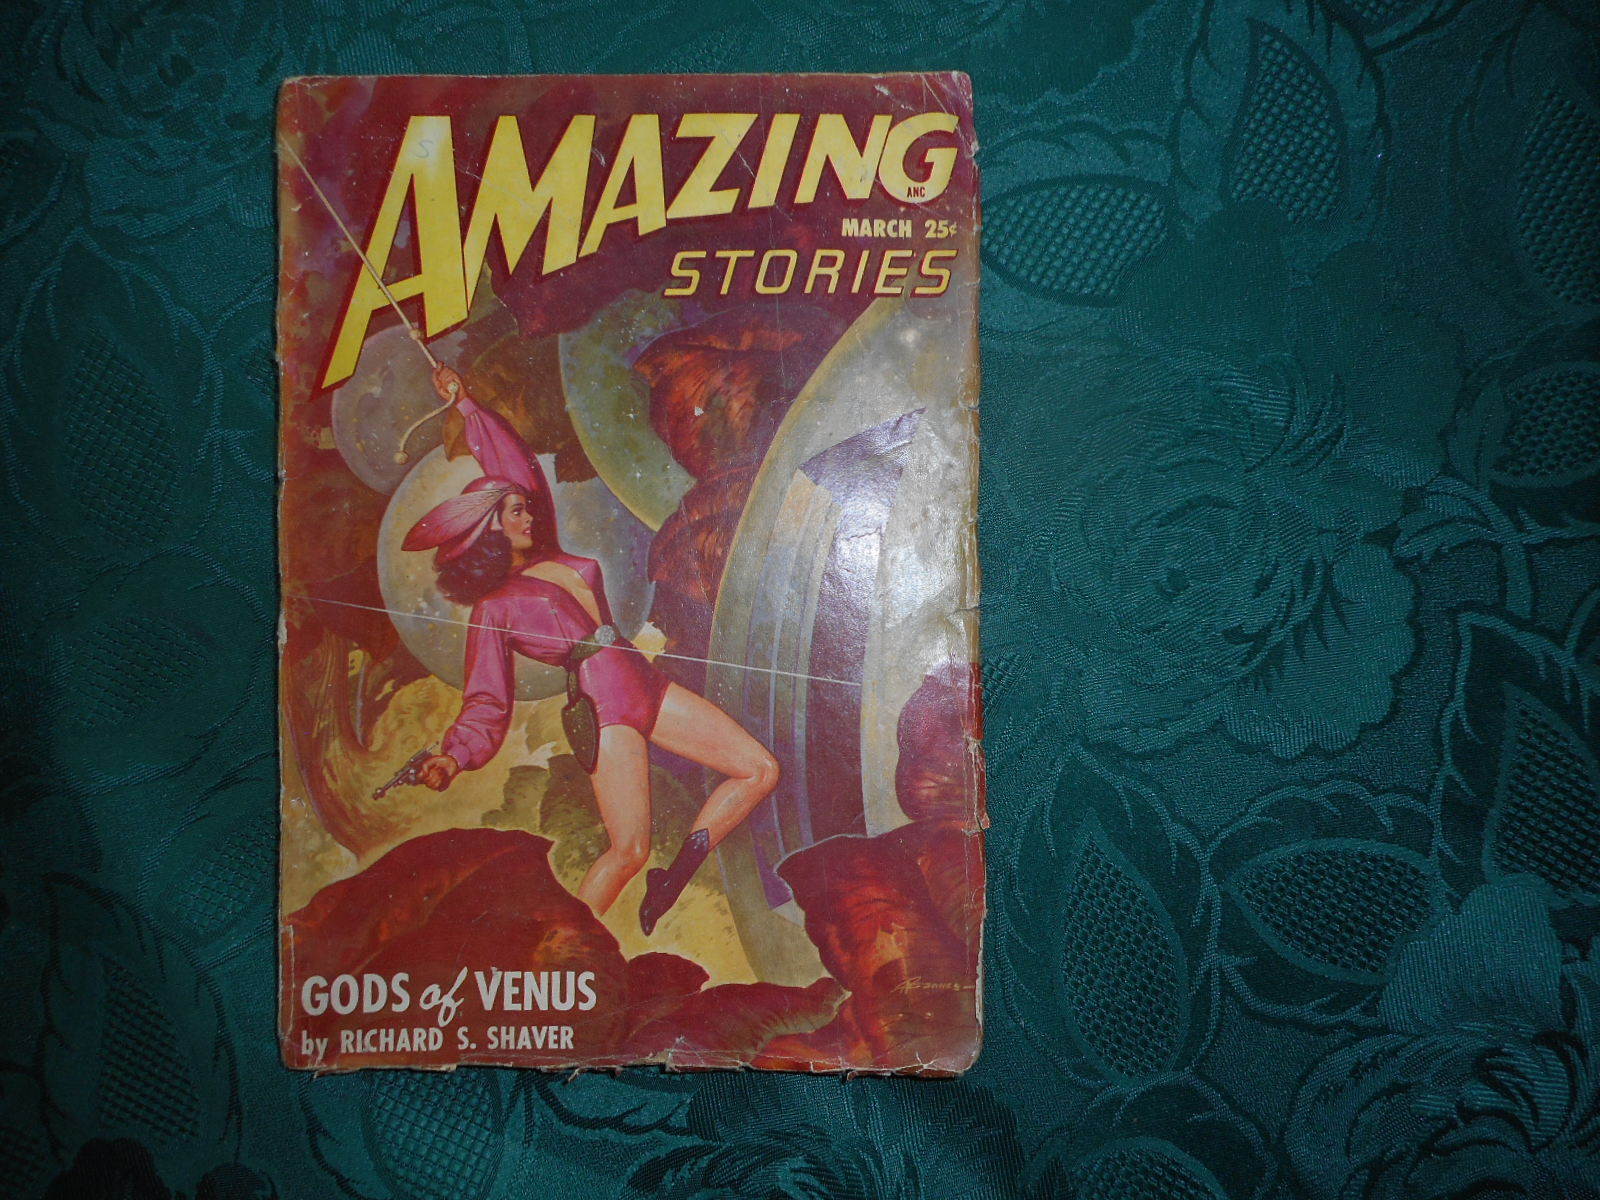 Image for AMAZING Stories: Volume 22 Number 3. March, 1948 Featuring the novel 'Gods of Venus' by Richard S. Shaver